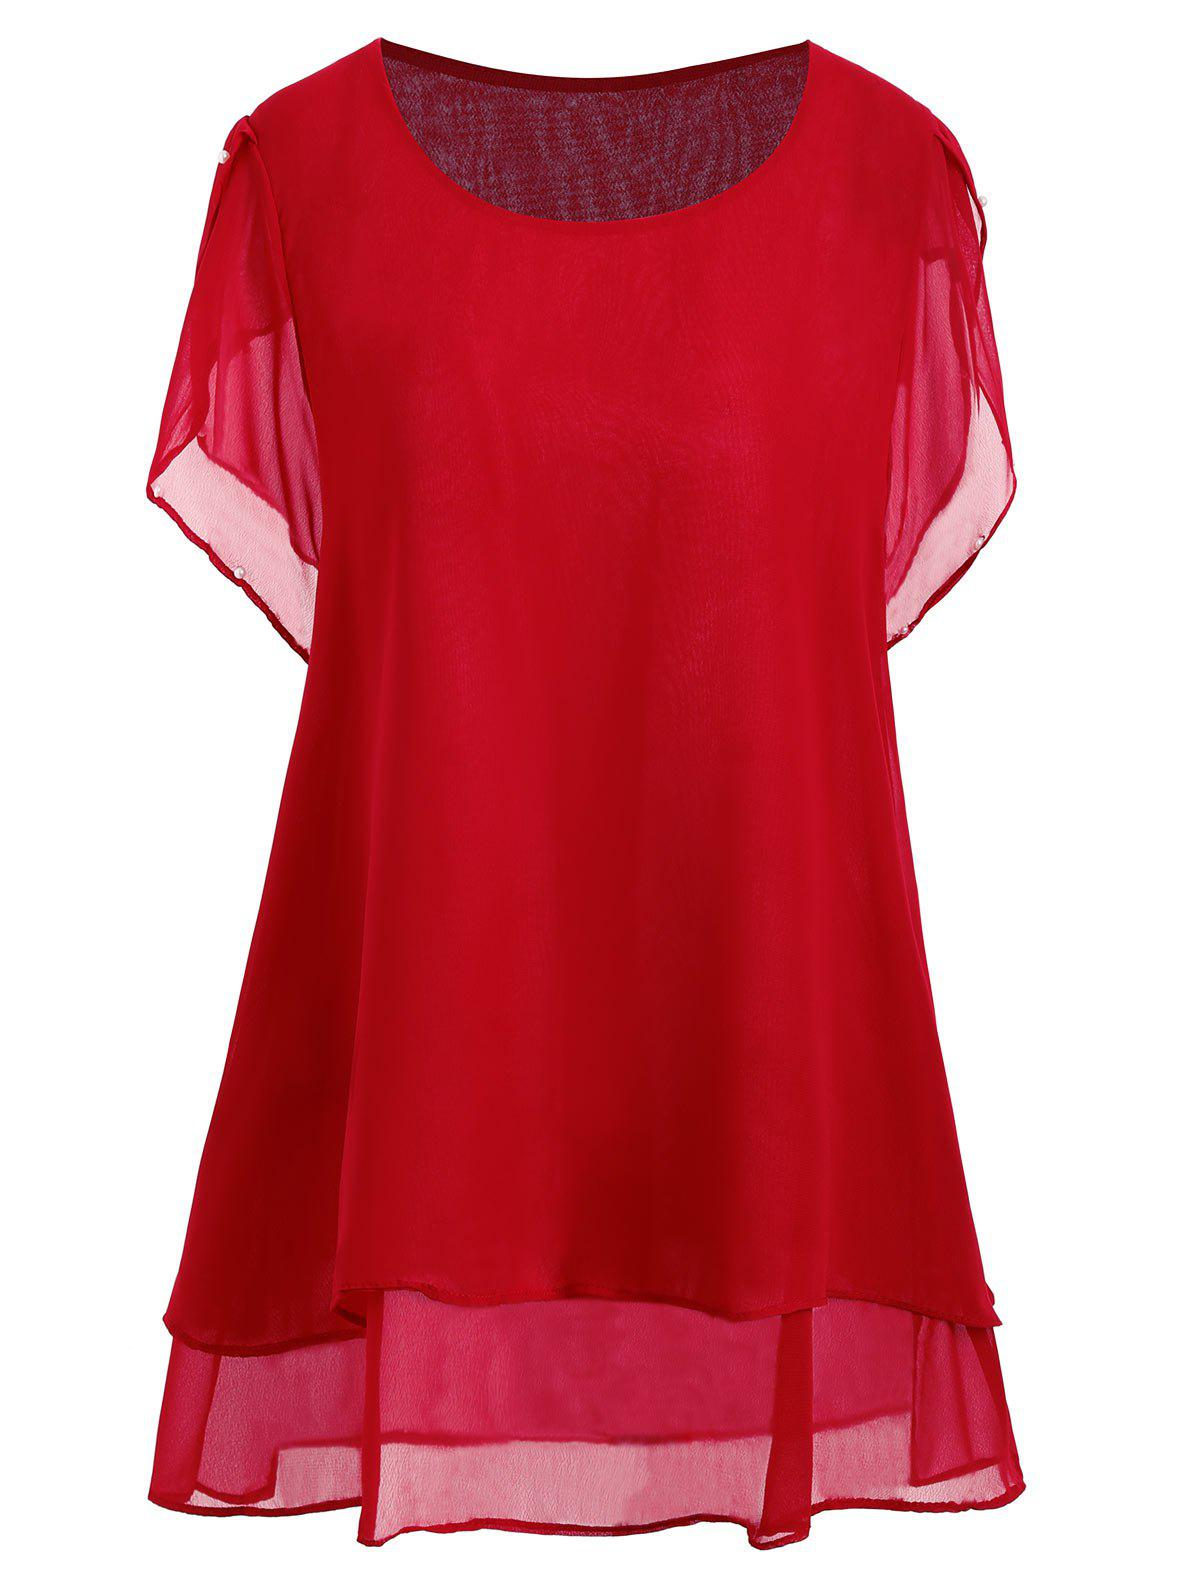 Plus Size Beaded Chiffon Tunic TopWOMEN<br><br>Size: 4XL; Color: RED; Material: Polyester; Shirt Length: Long; Sleeve Length: Short; Collar: Round Neck; Style: Casual; Season: Summer; Pattern Type: Solid; Weight: 0.2000kg; Package Contents: 1 x Top;